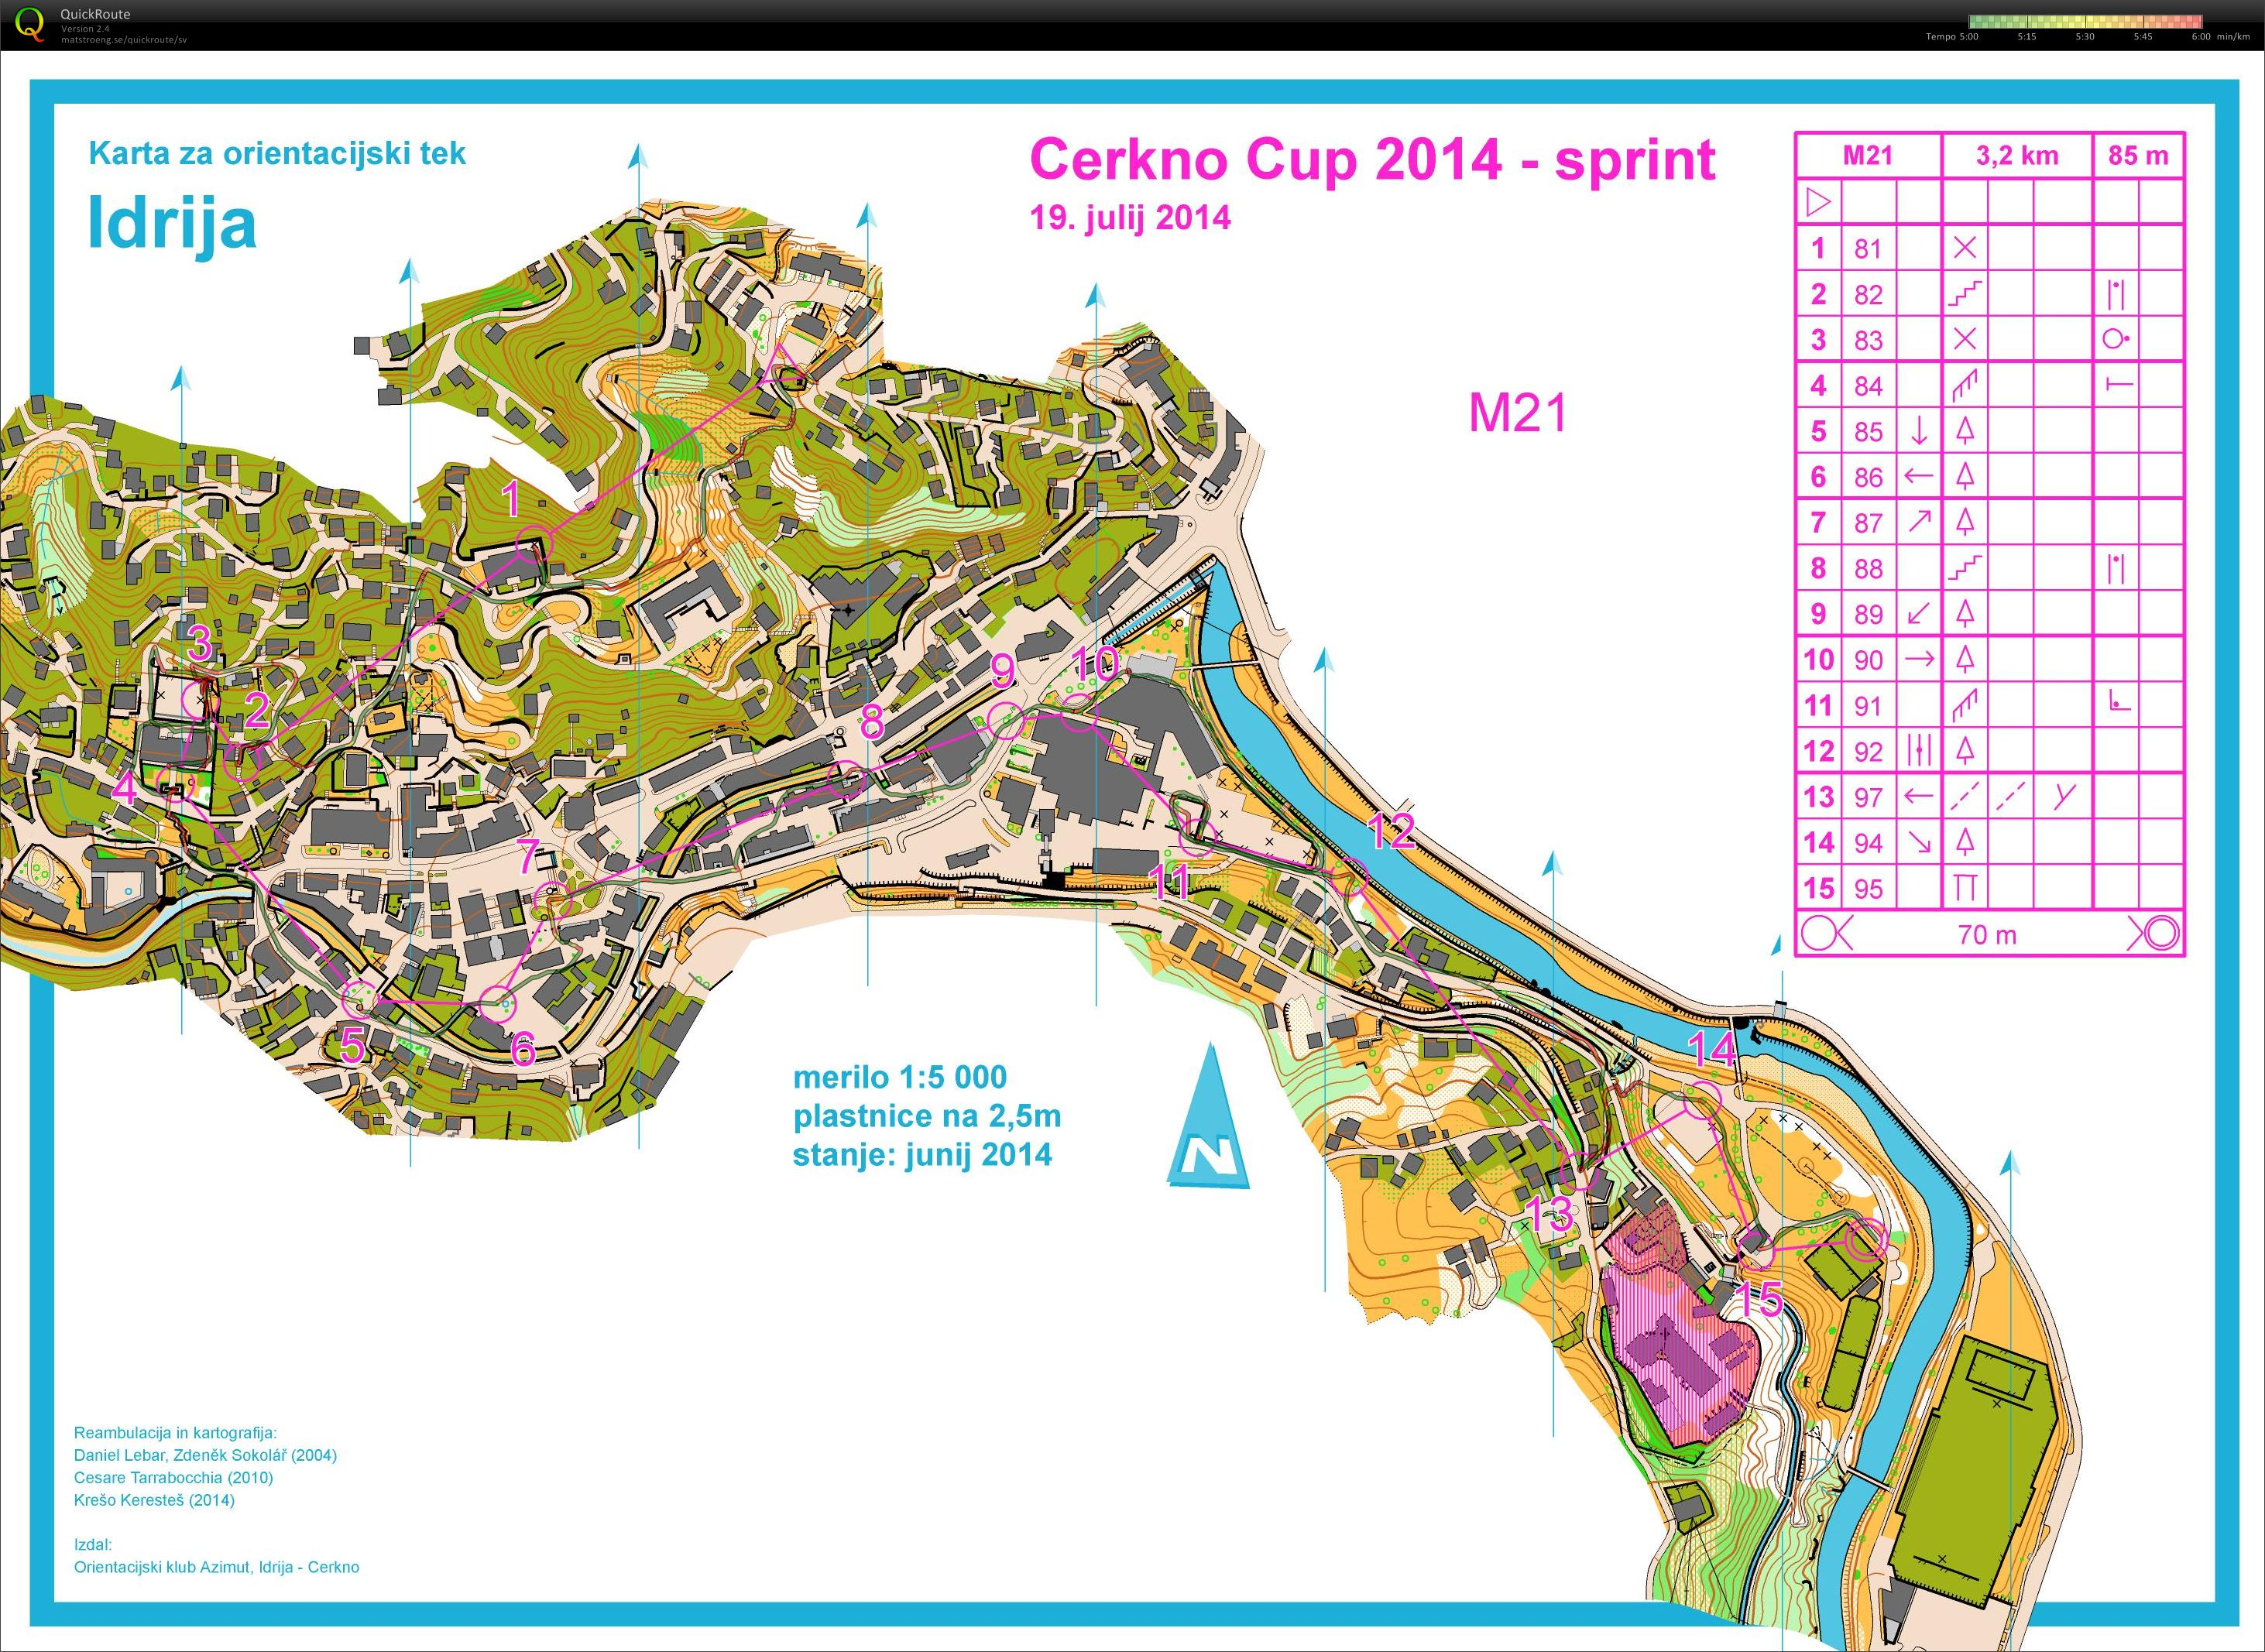 Cerkno Cup - Sprint (2014-07-19)